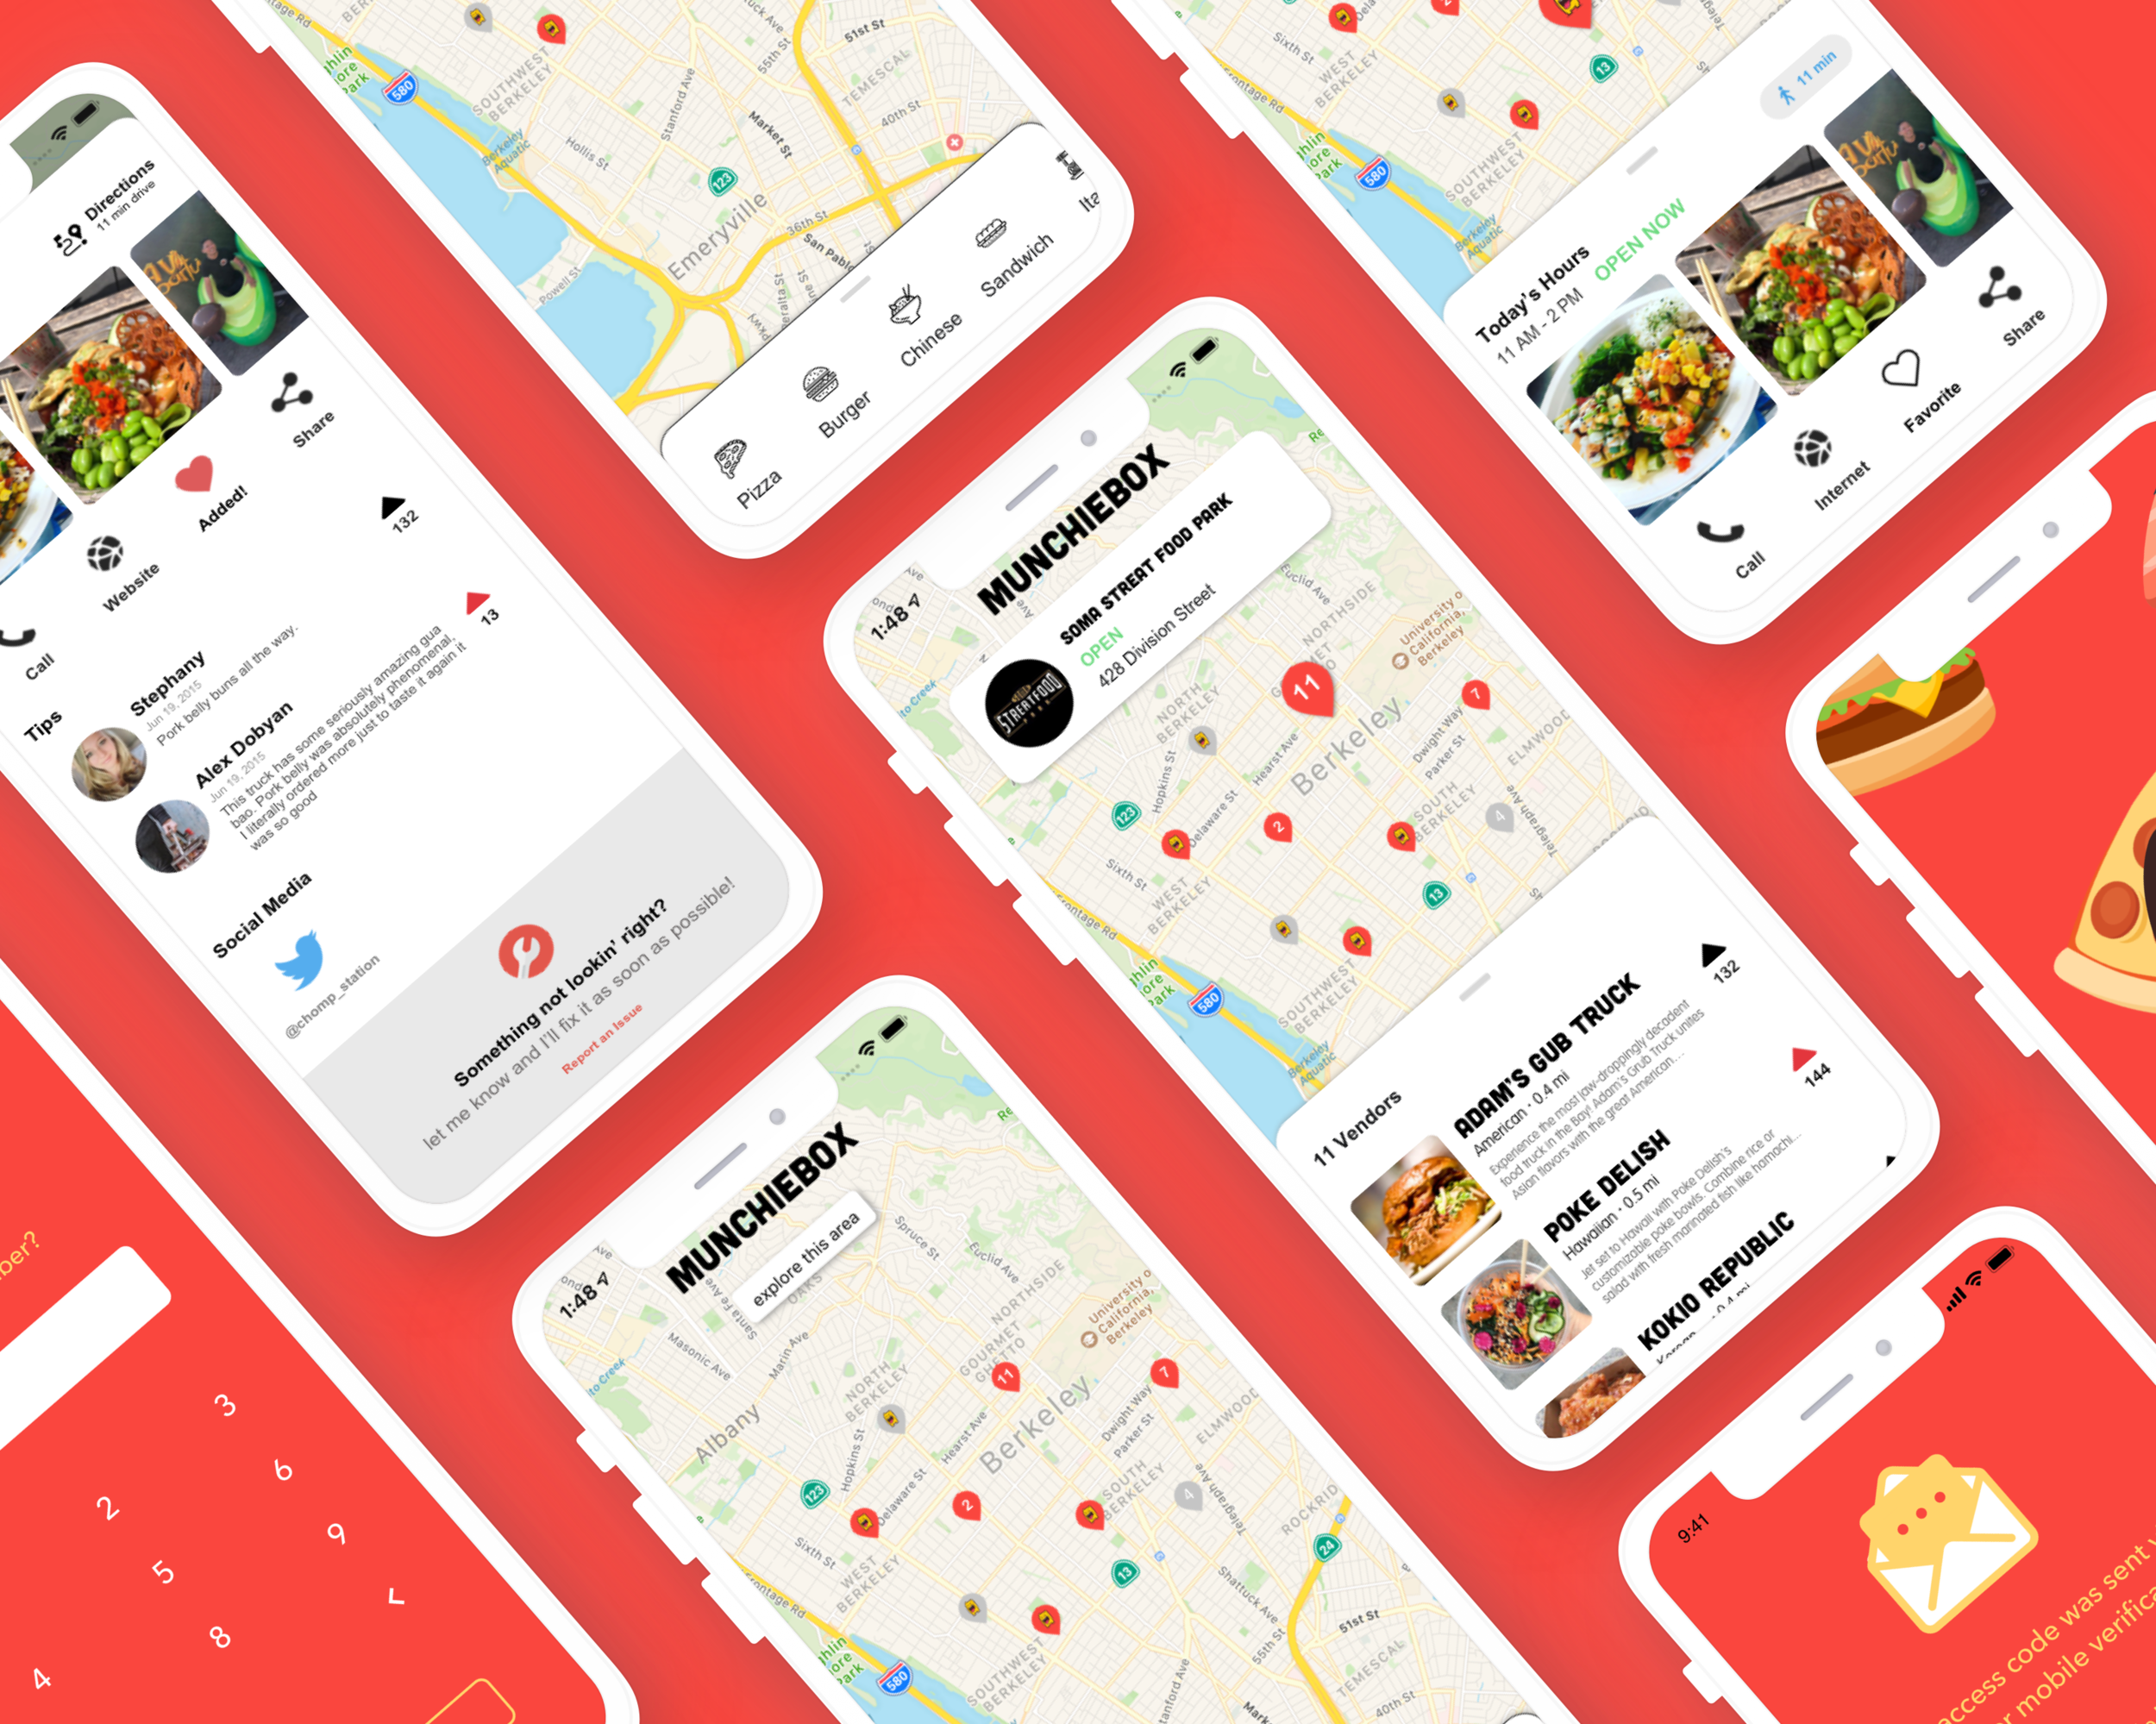 MunchieBox Mobile  Food truck locator platform